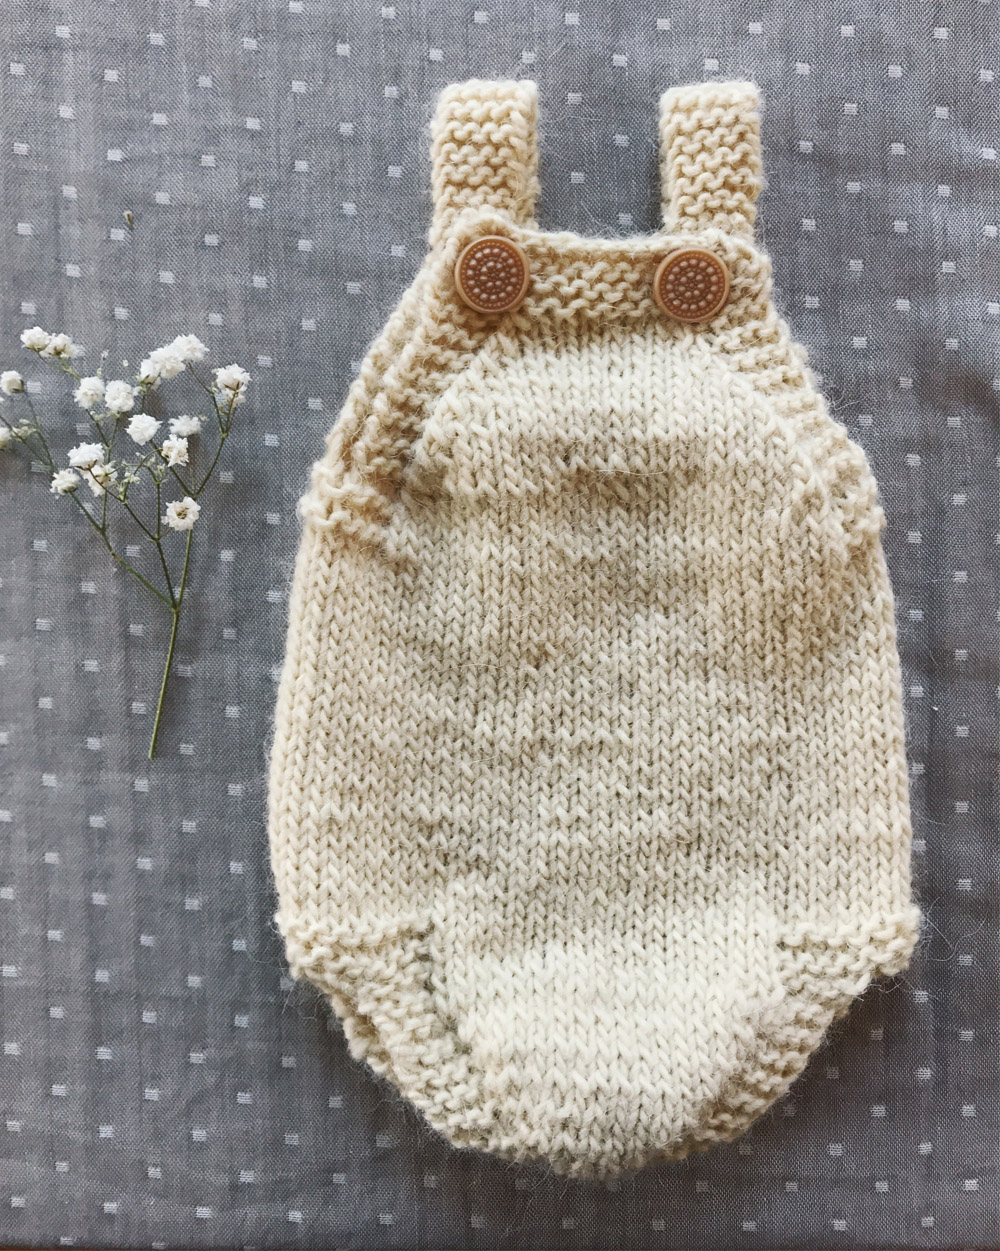 our_week_in_details_3_baby_knit_petite_romper_knit